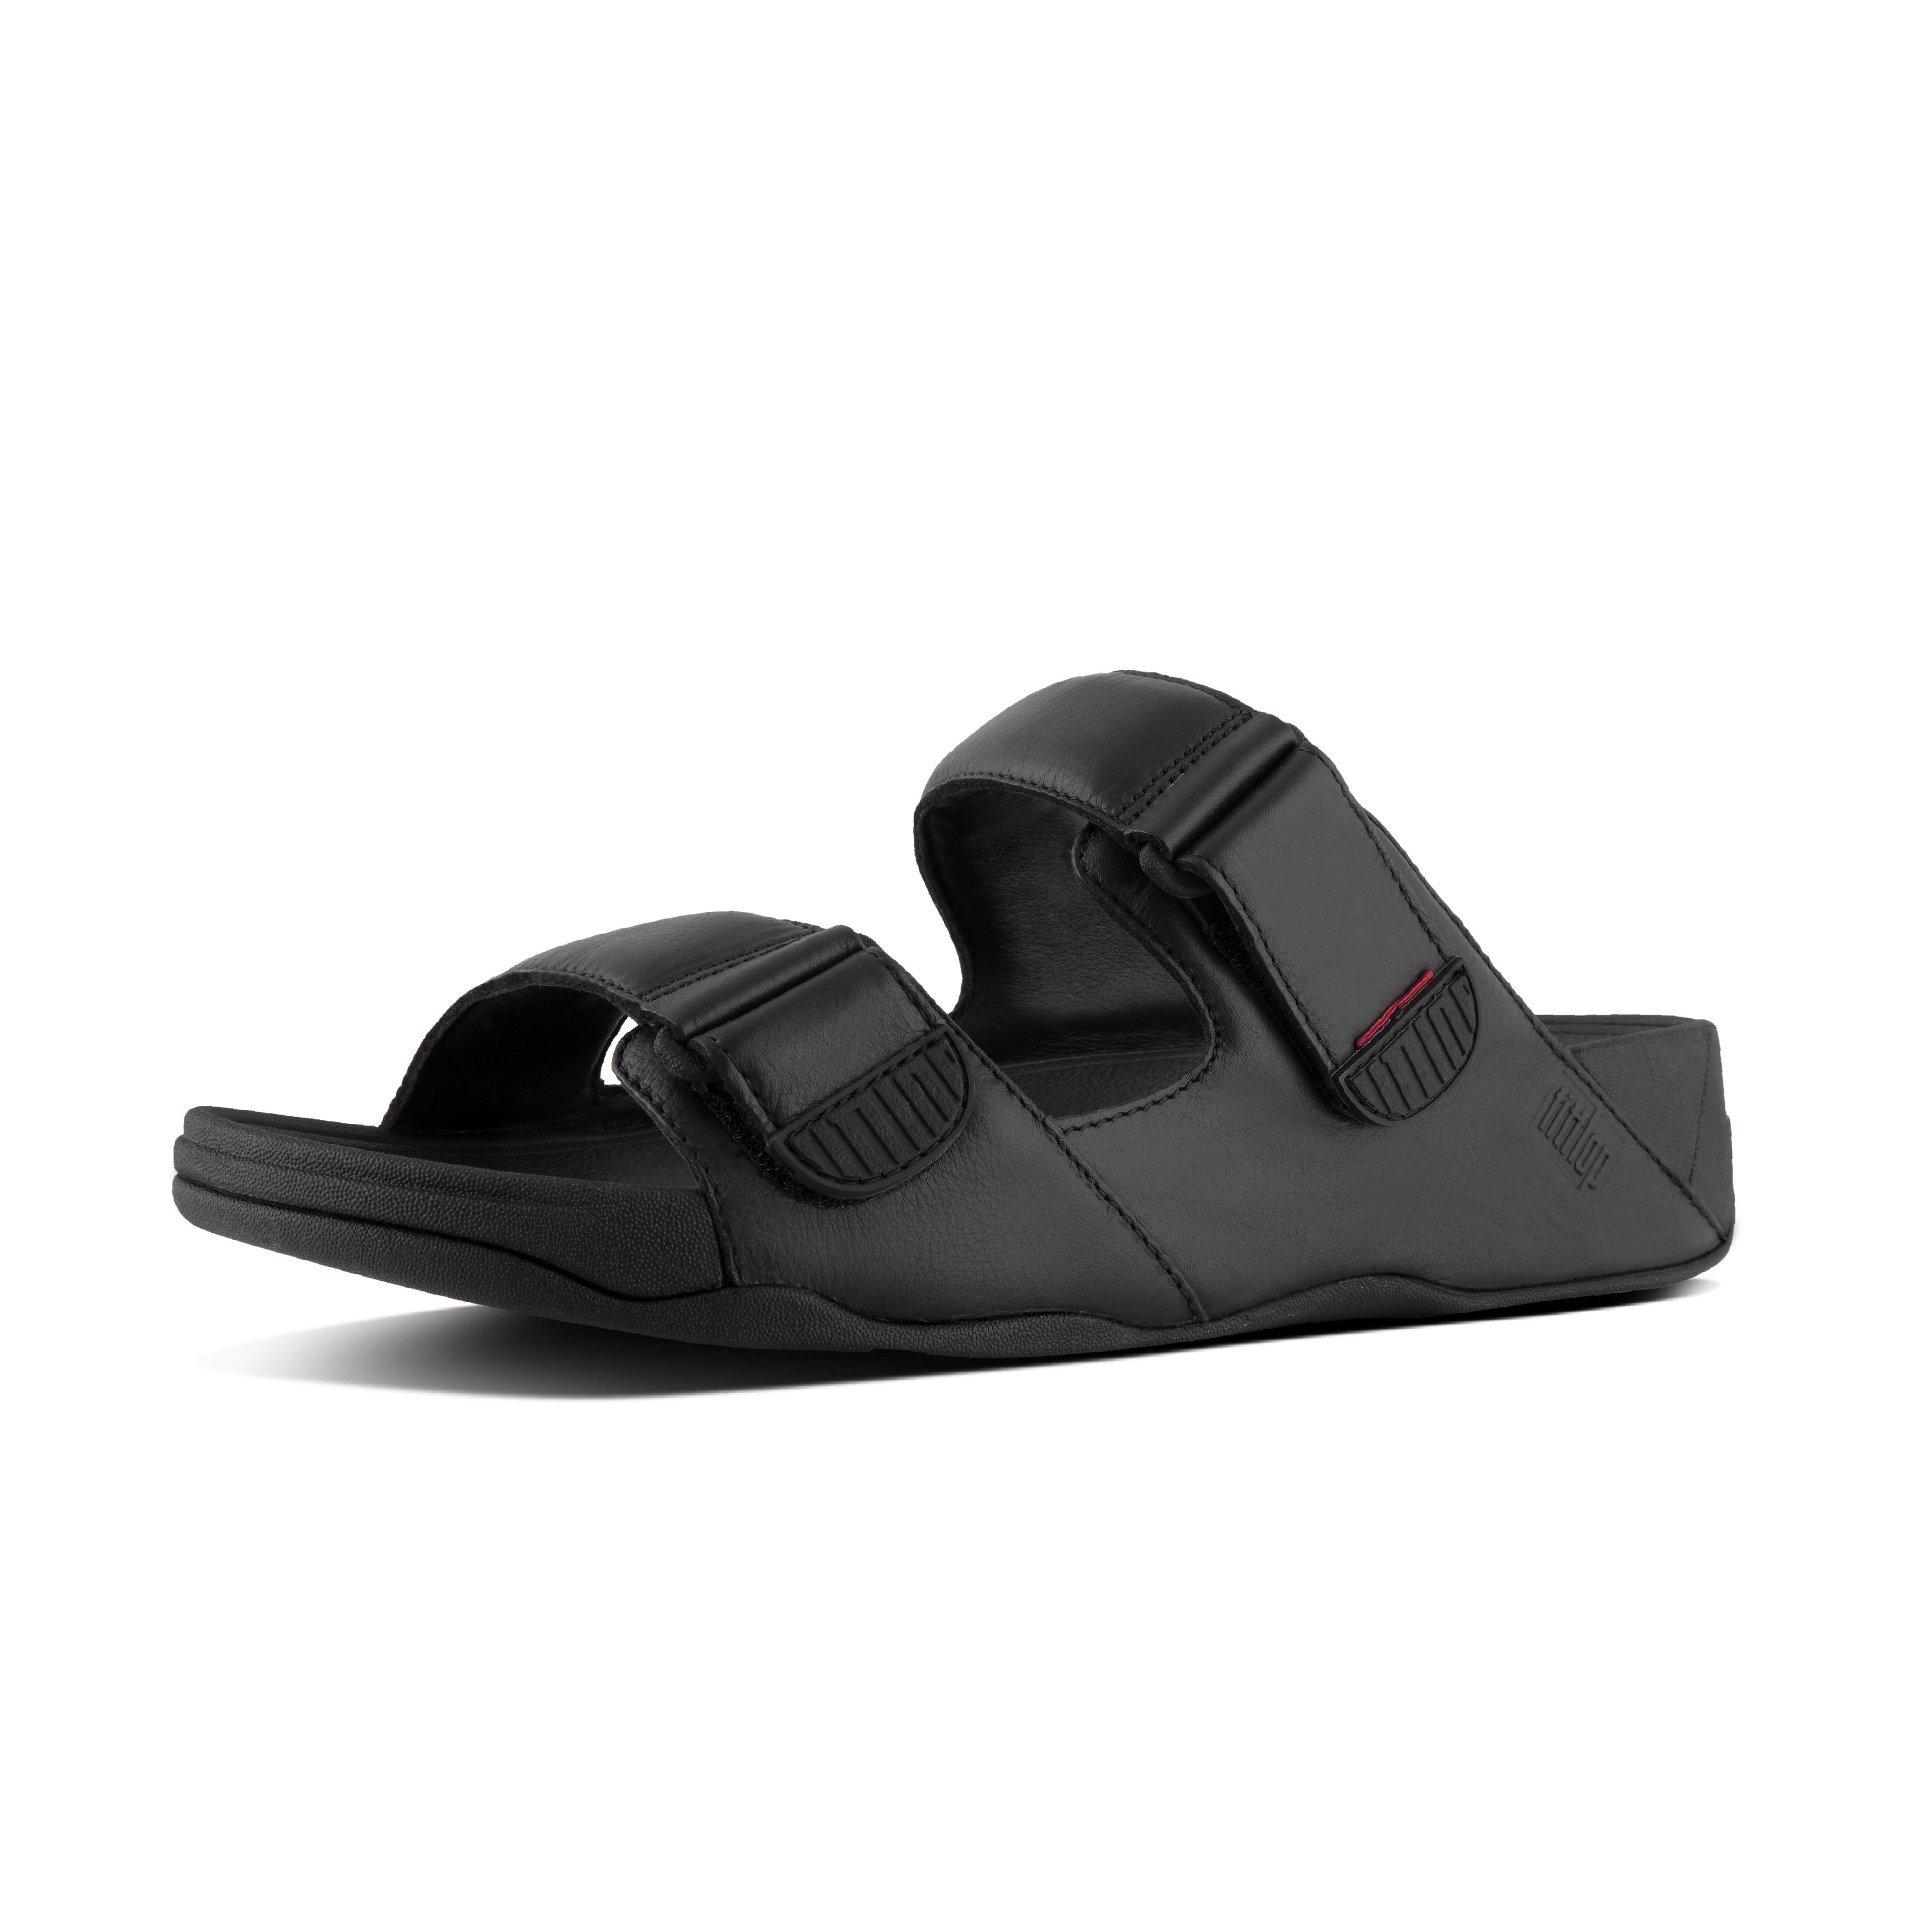 e98f49559 Lyst - Fitflop Gogh in Black for Men